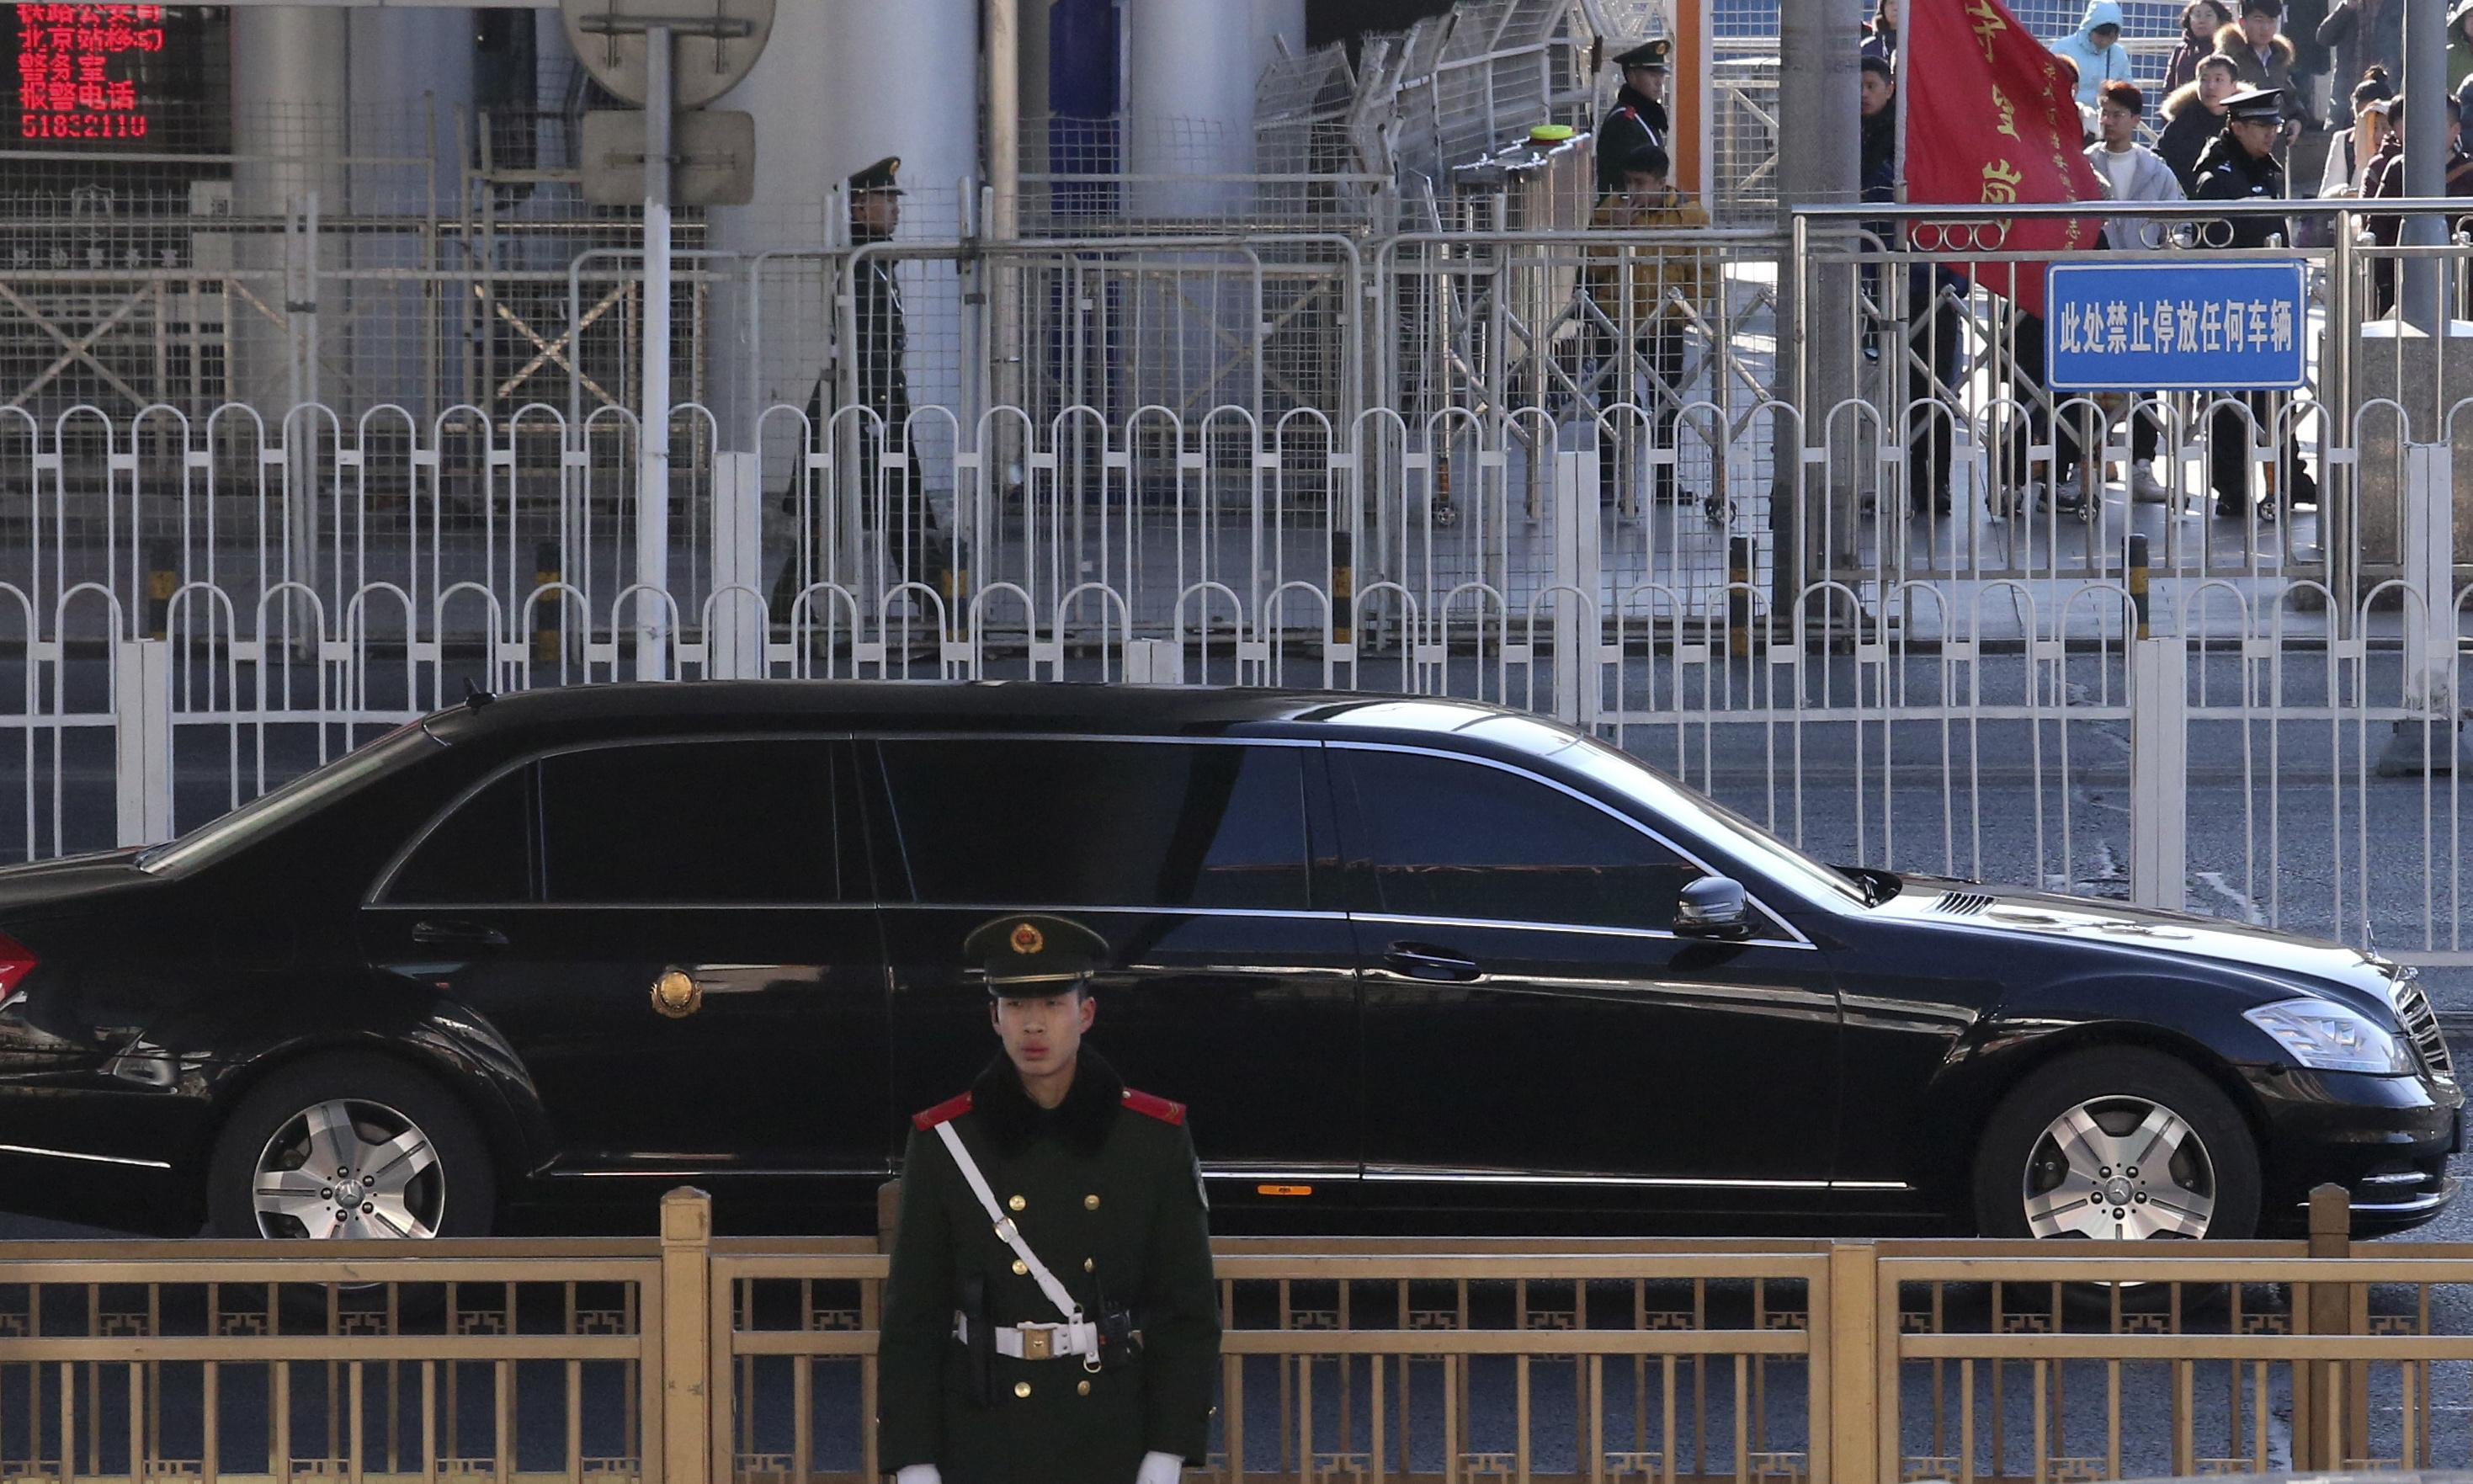 Daimler says it has no idea how North Korea got hold of limousines